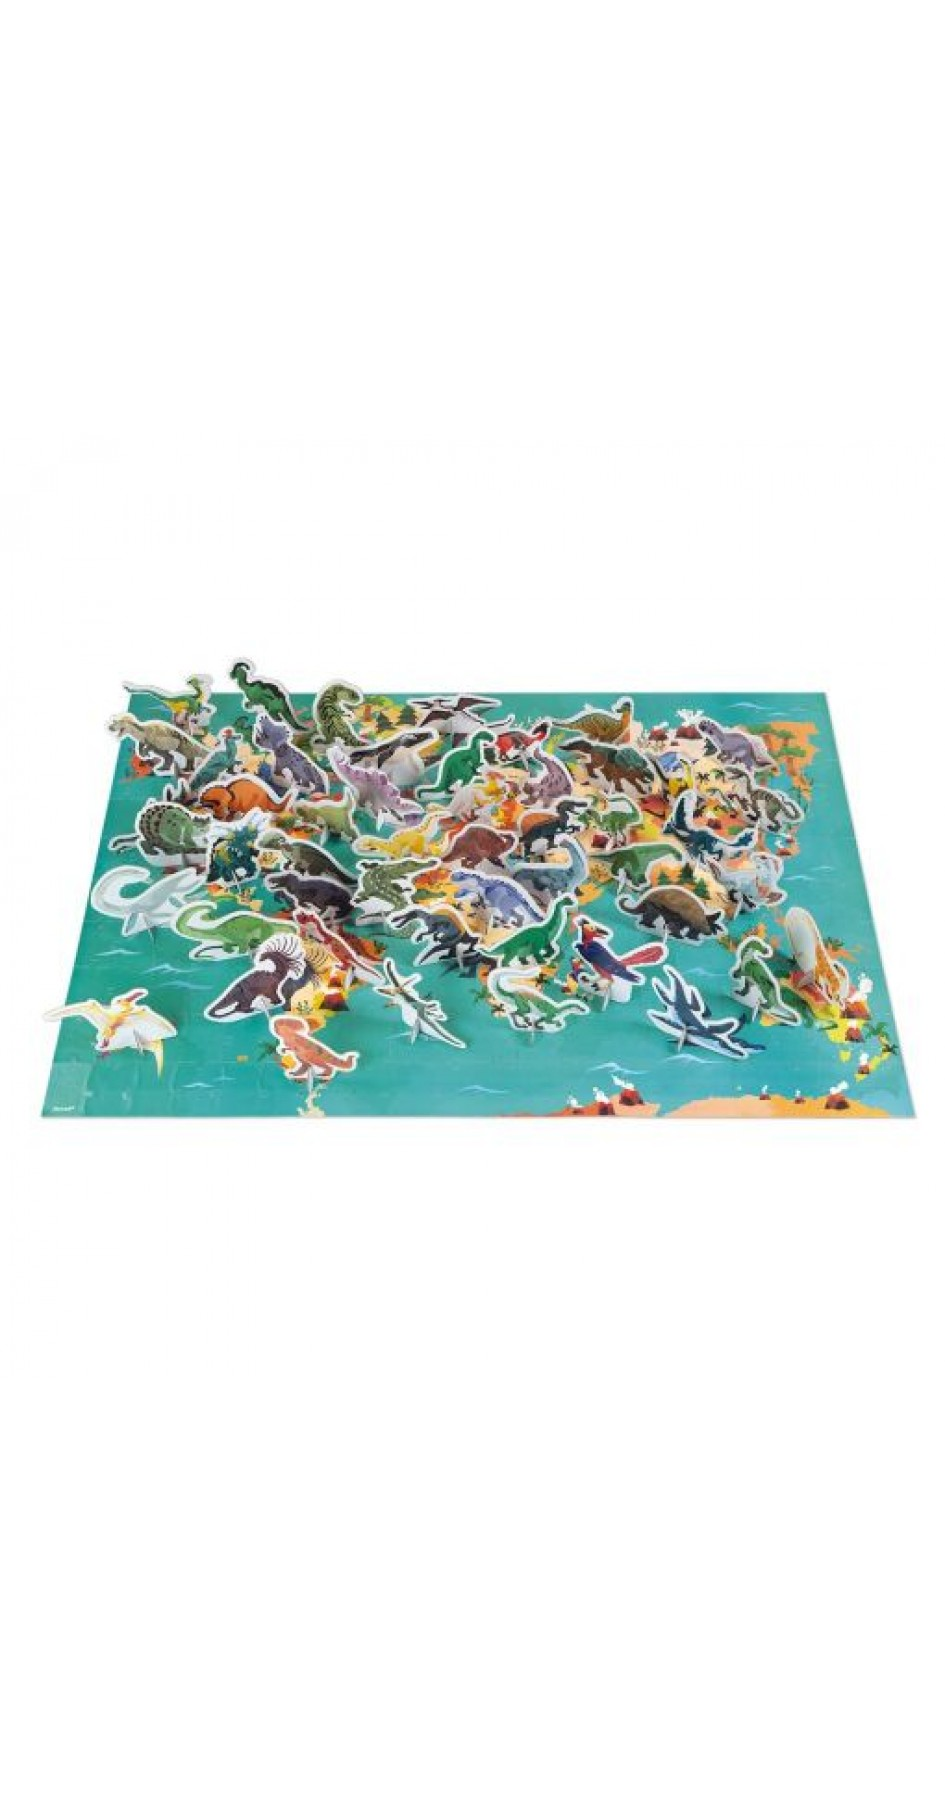 Educational Puzzle The Dinosaurs (200 pieces)